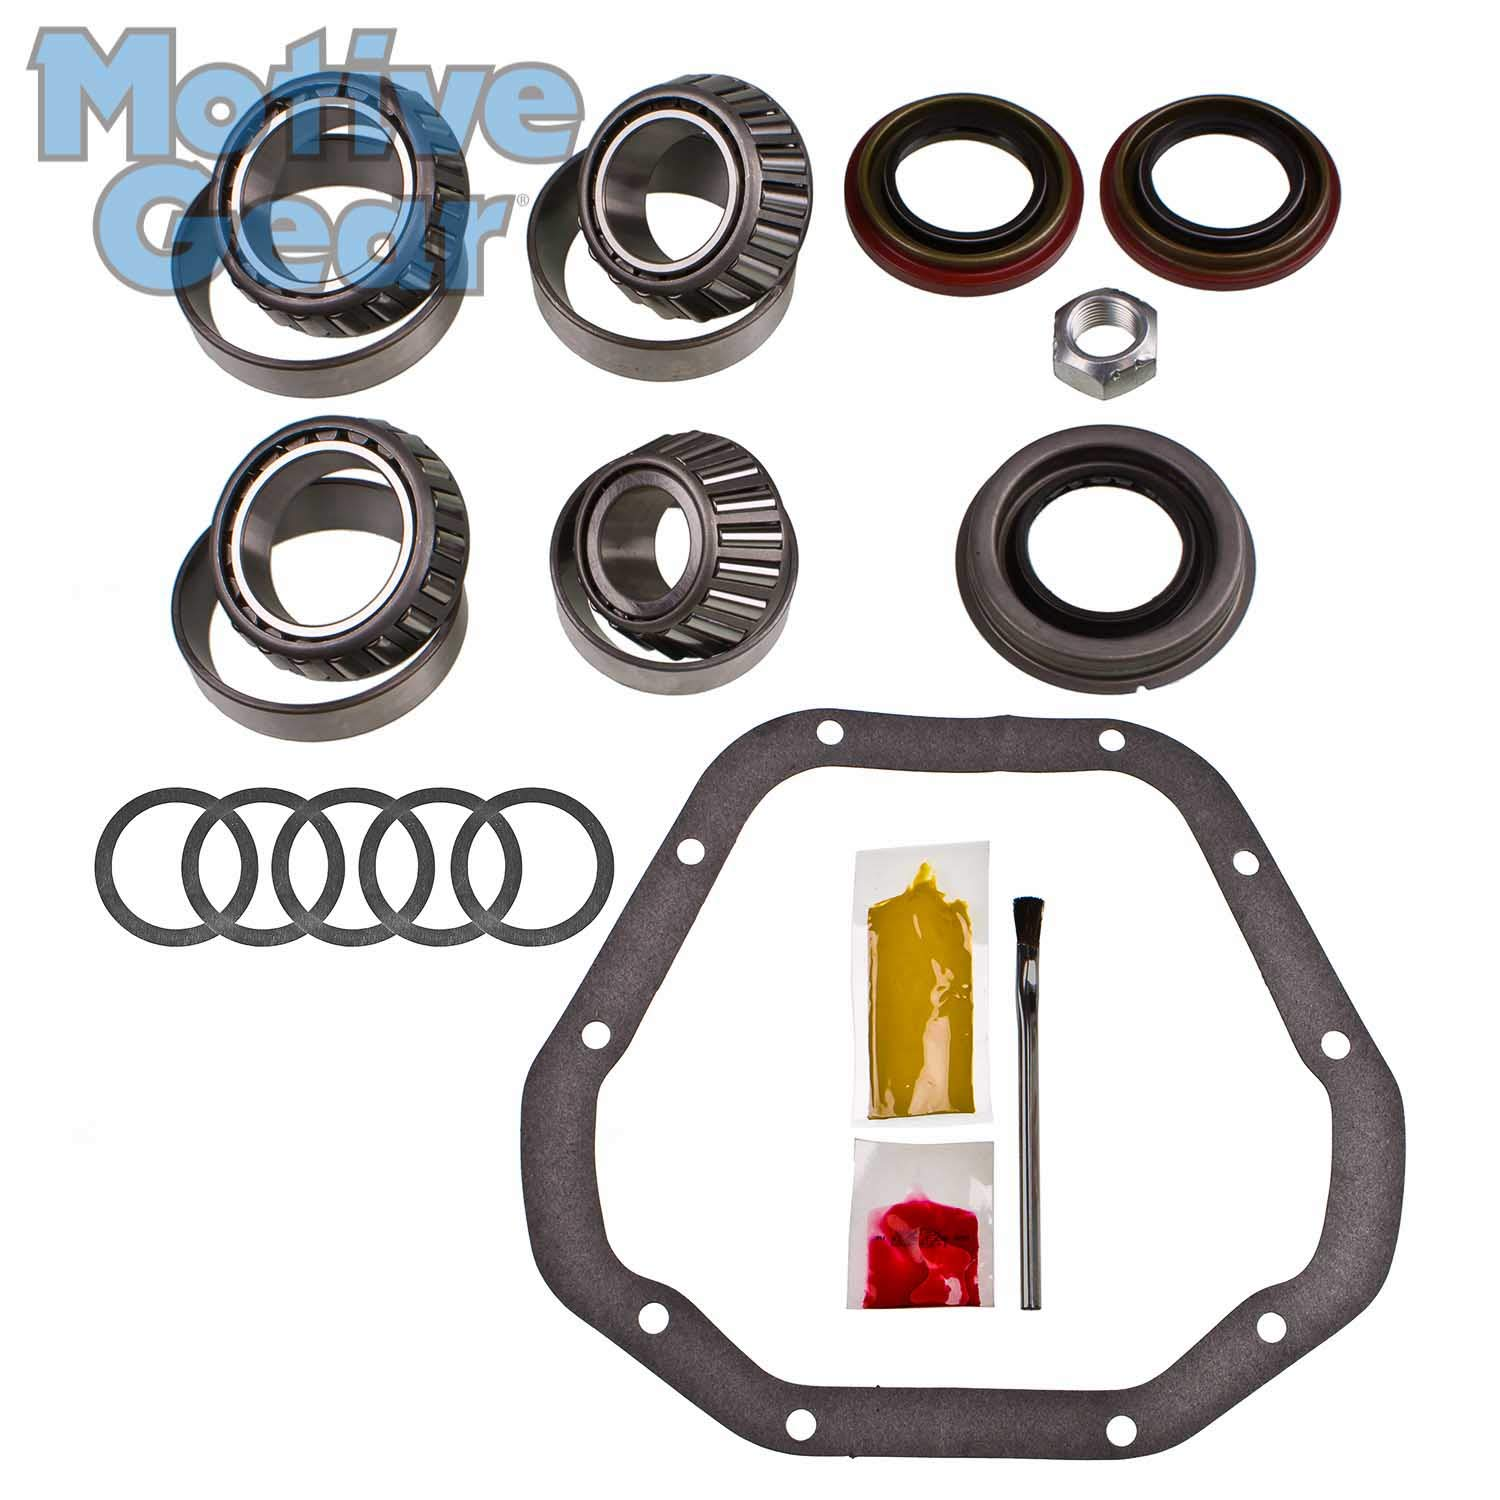 Motive Gear R70URT Light Duty Timken Bearing Kit, BK Dana 70U